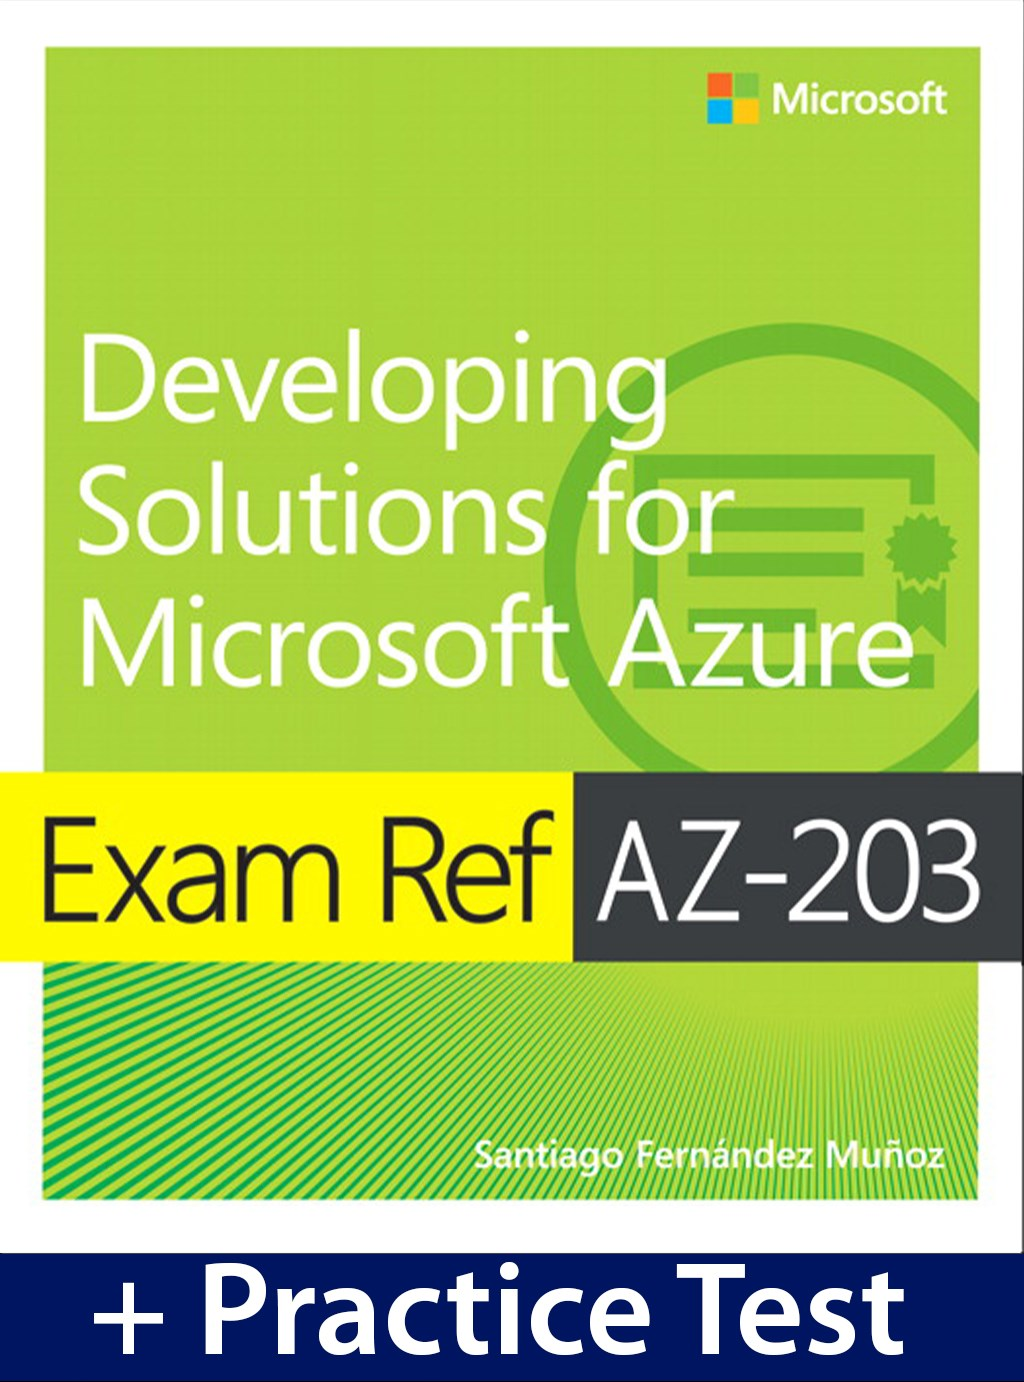 Exam Ref AZ-203 Developing Solutions for Microsoft Azure with Practice Test